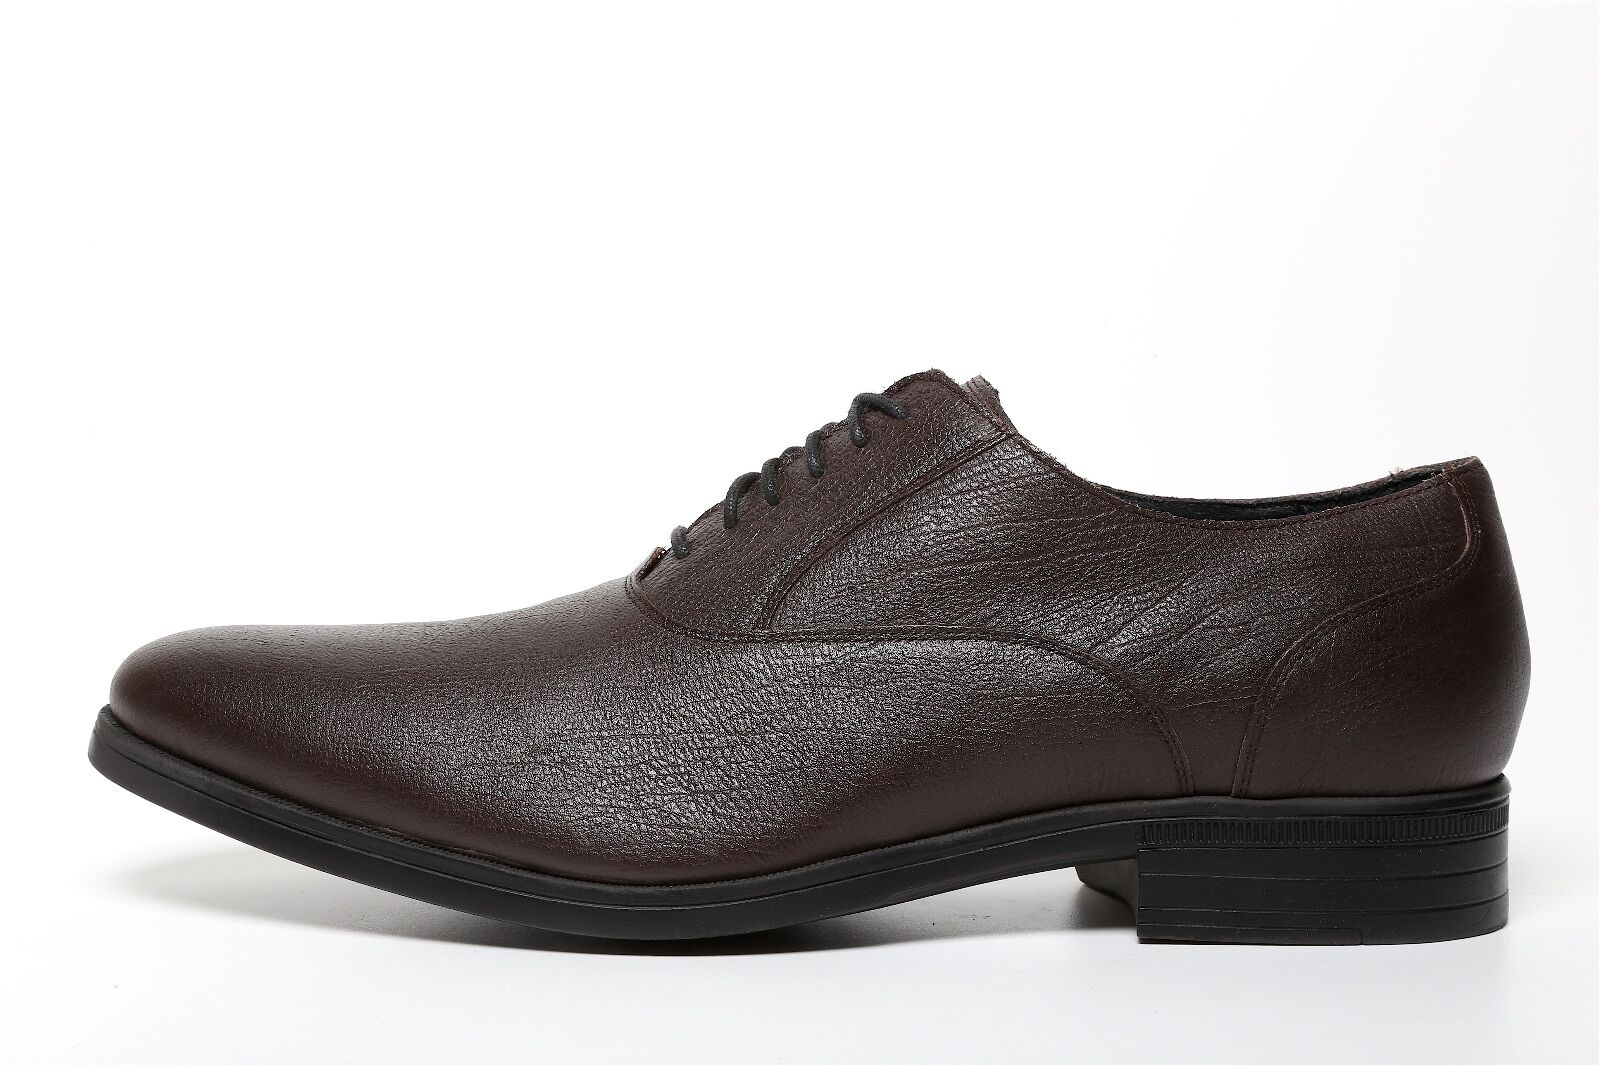 Cole Haan Men's Brown Madison Plain Ox II shoes 6202 Size 12 M